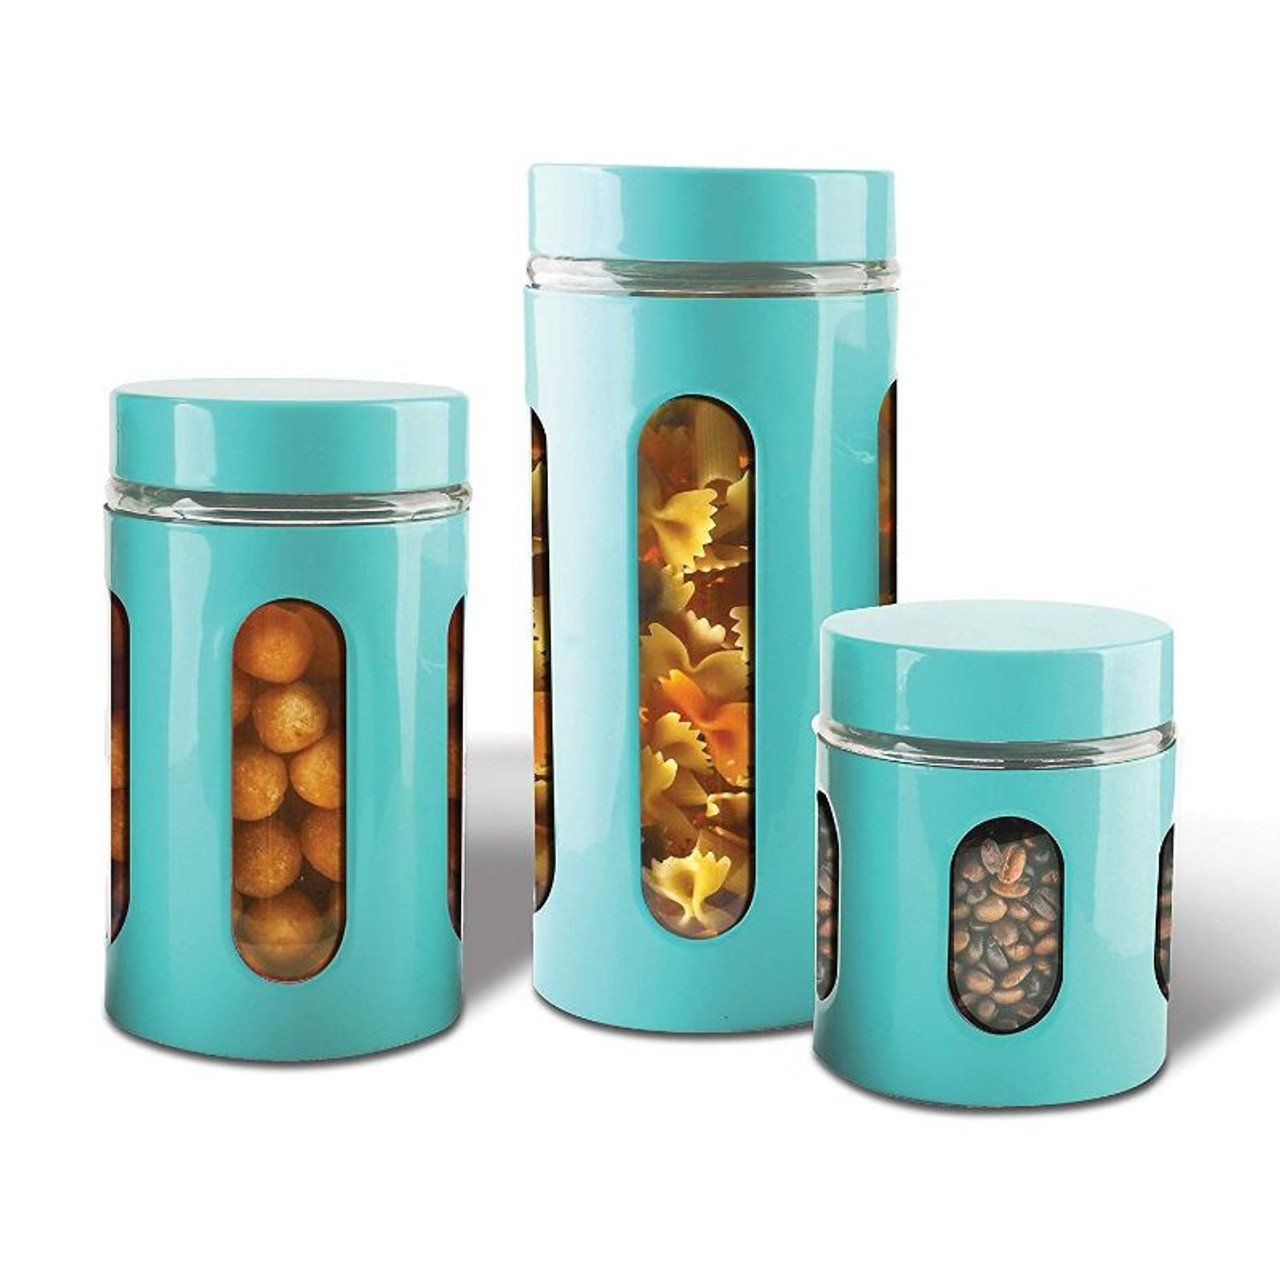 Air tight Food Containers Stainless Steel - 3 Piece Set